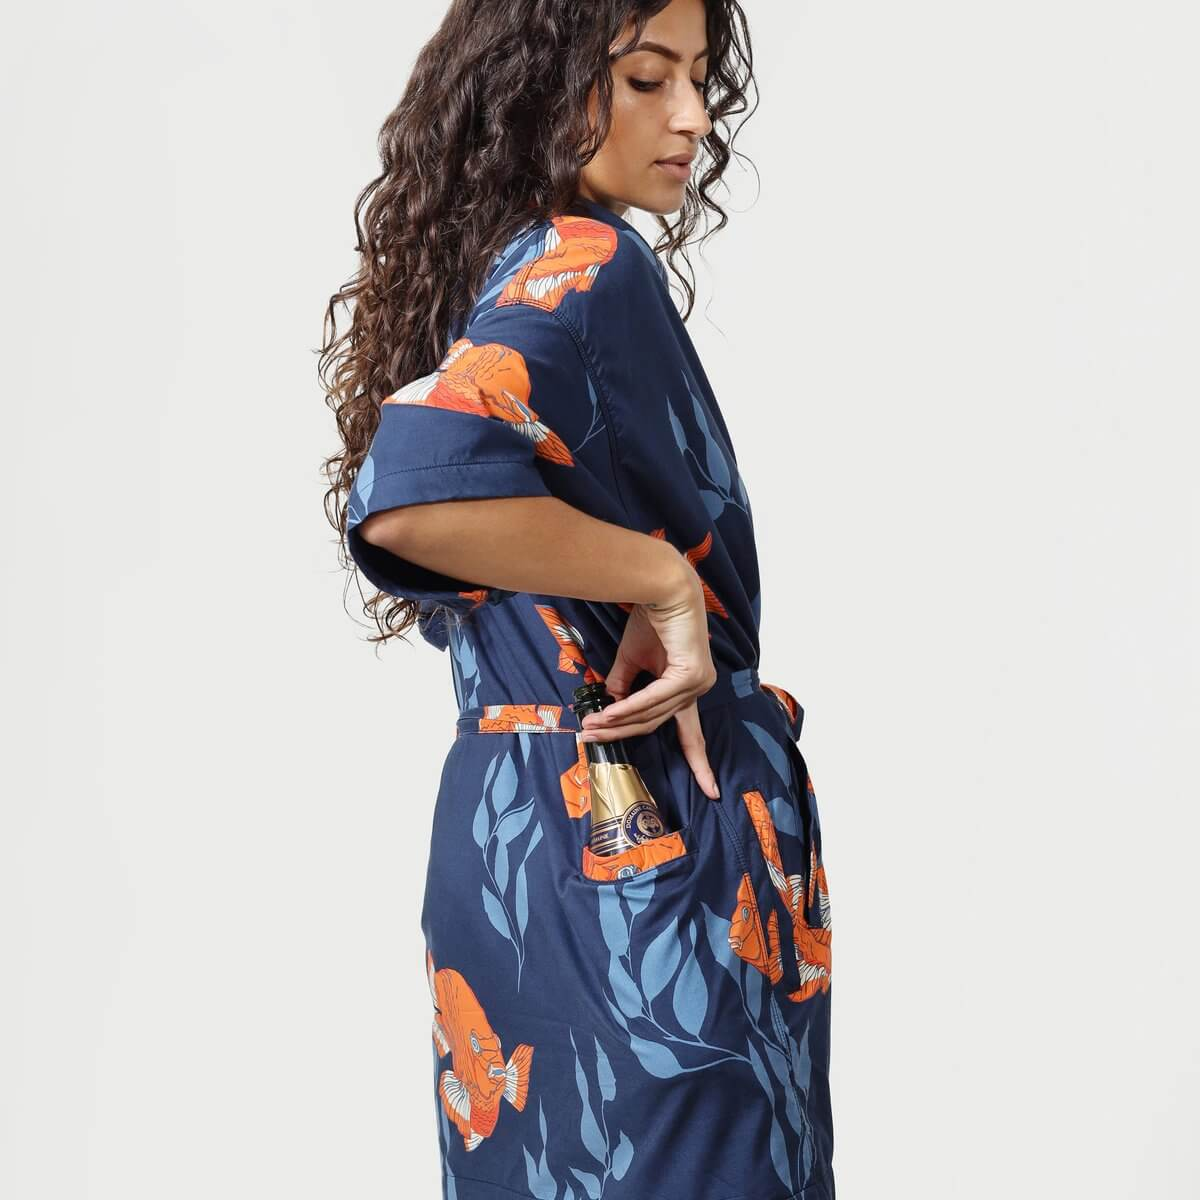 California Cowboy La Sirena robe pocket